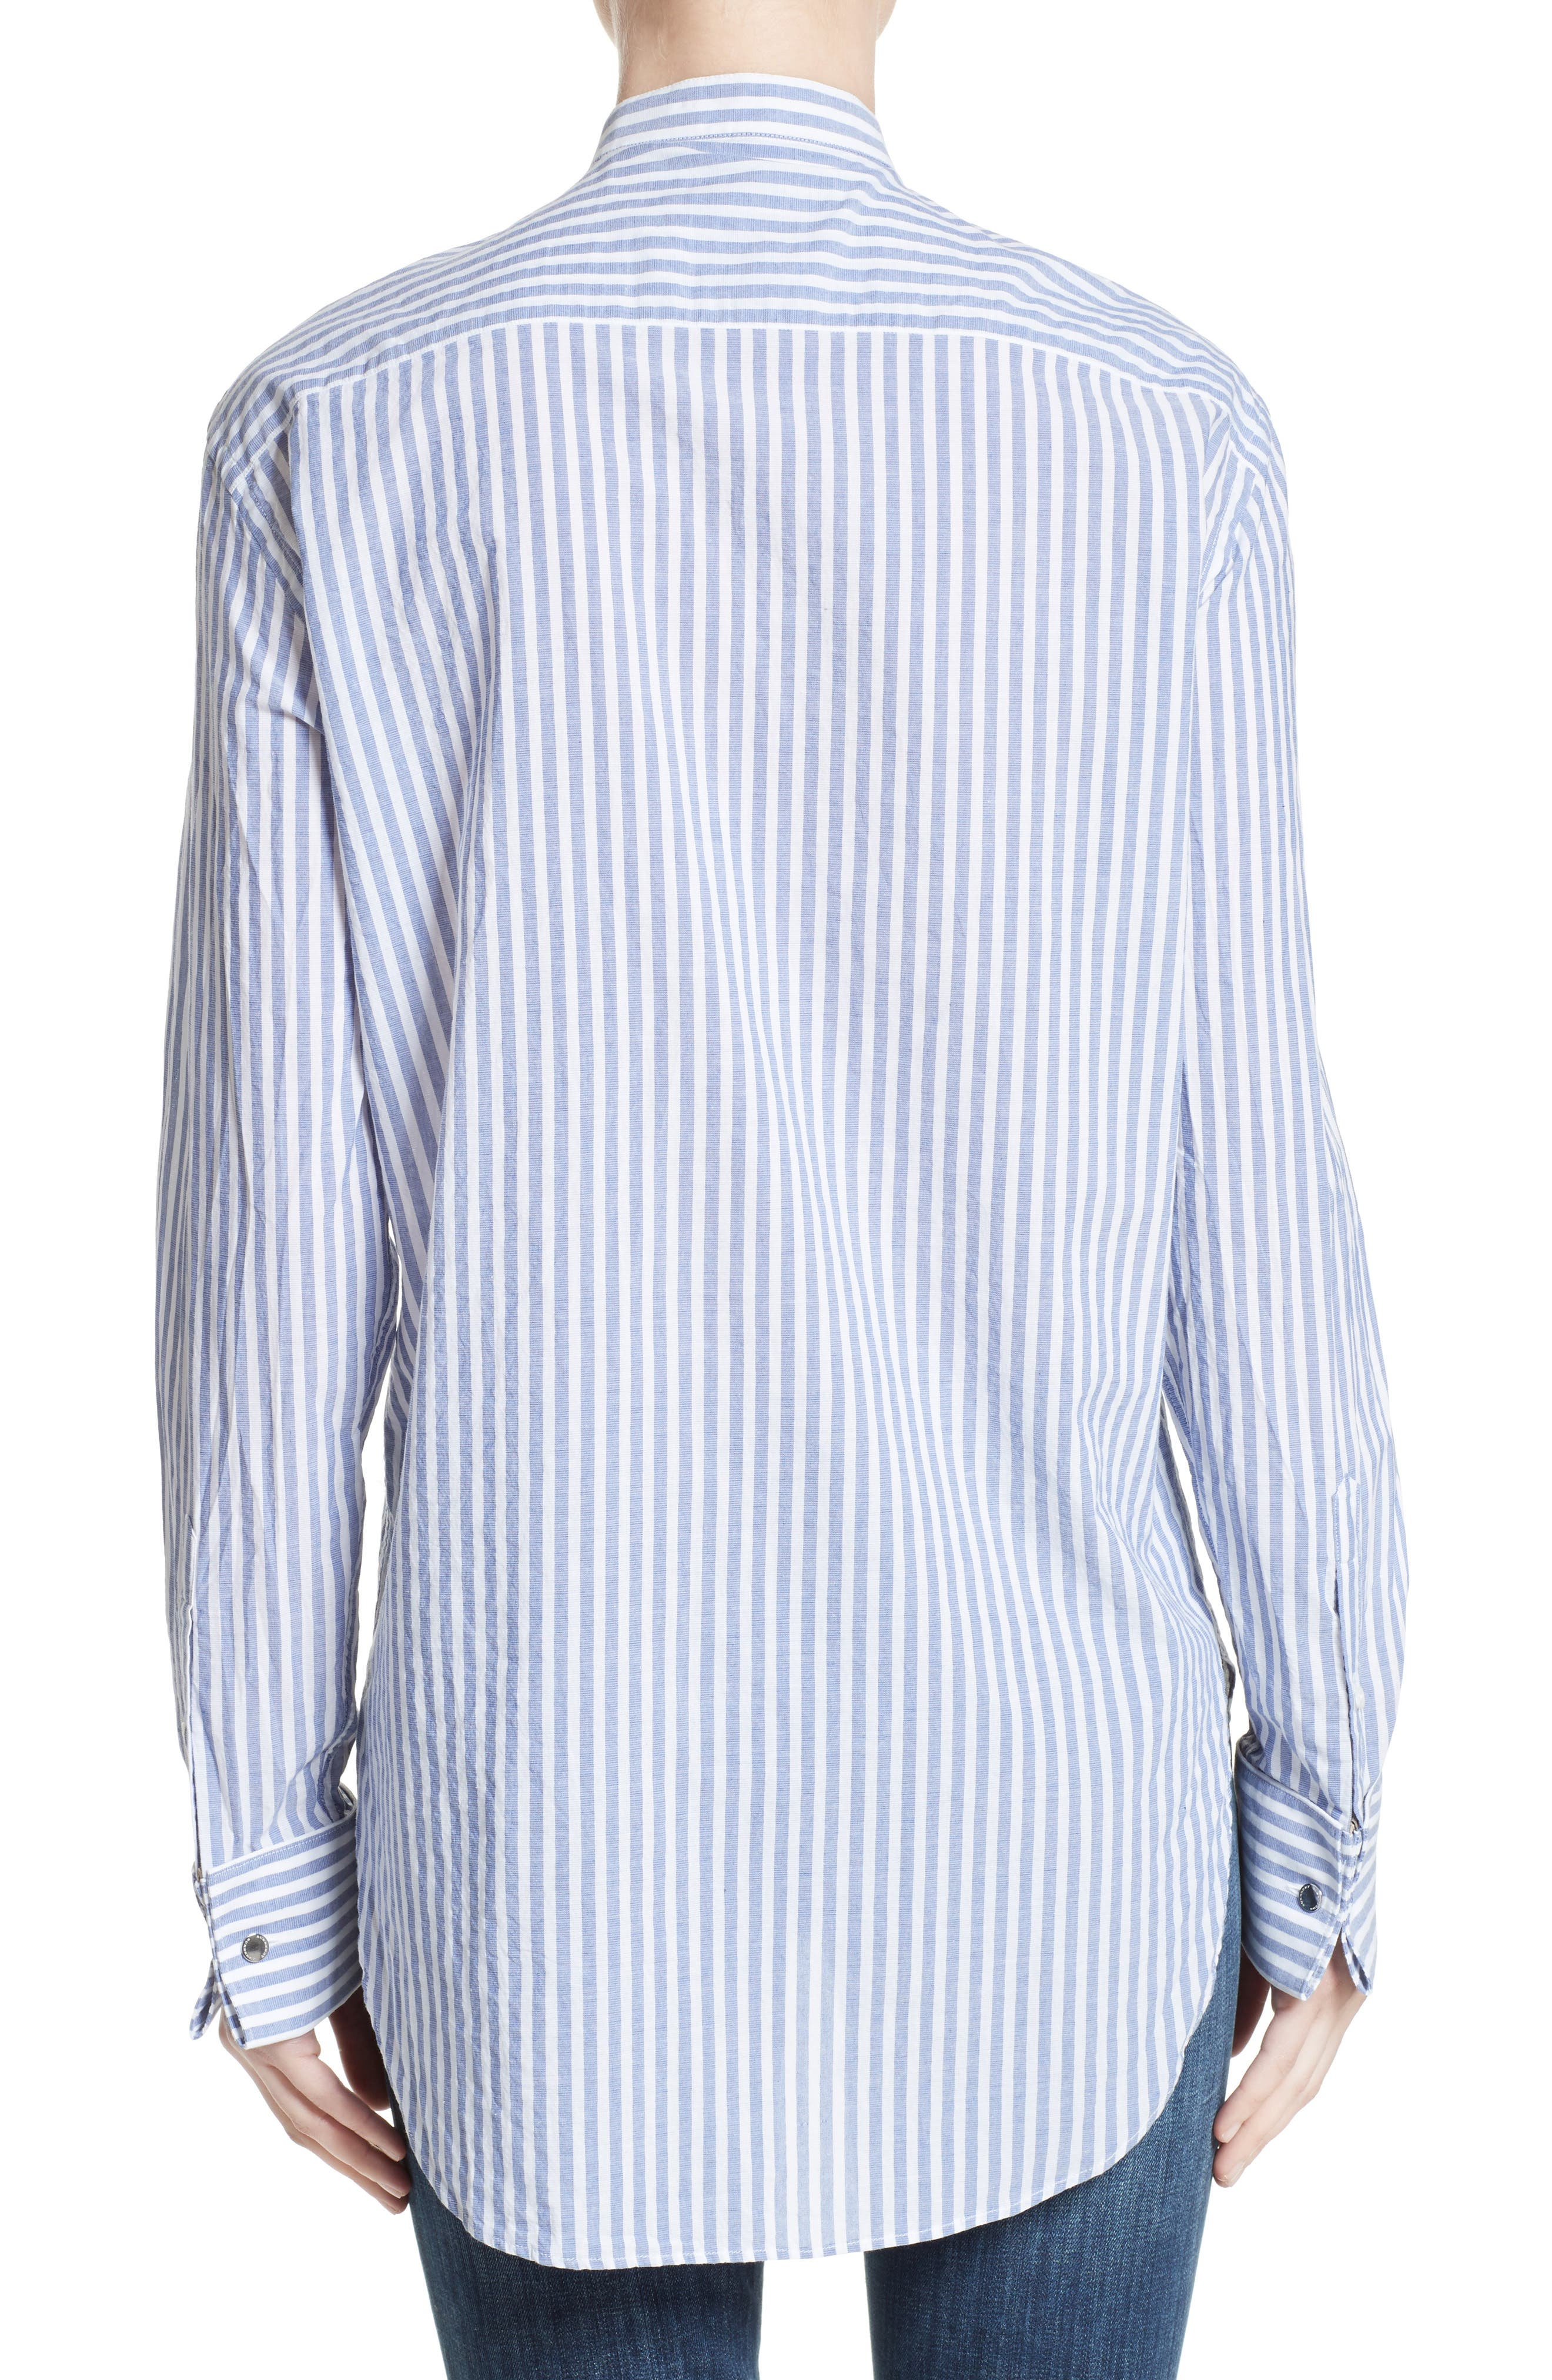 Benfleet Stripe Cotton Top,                             Alternate thumbnail 2, color,                             456